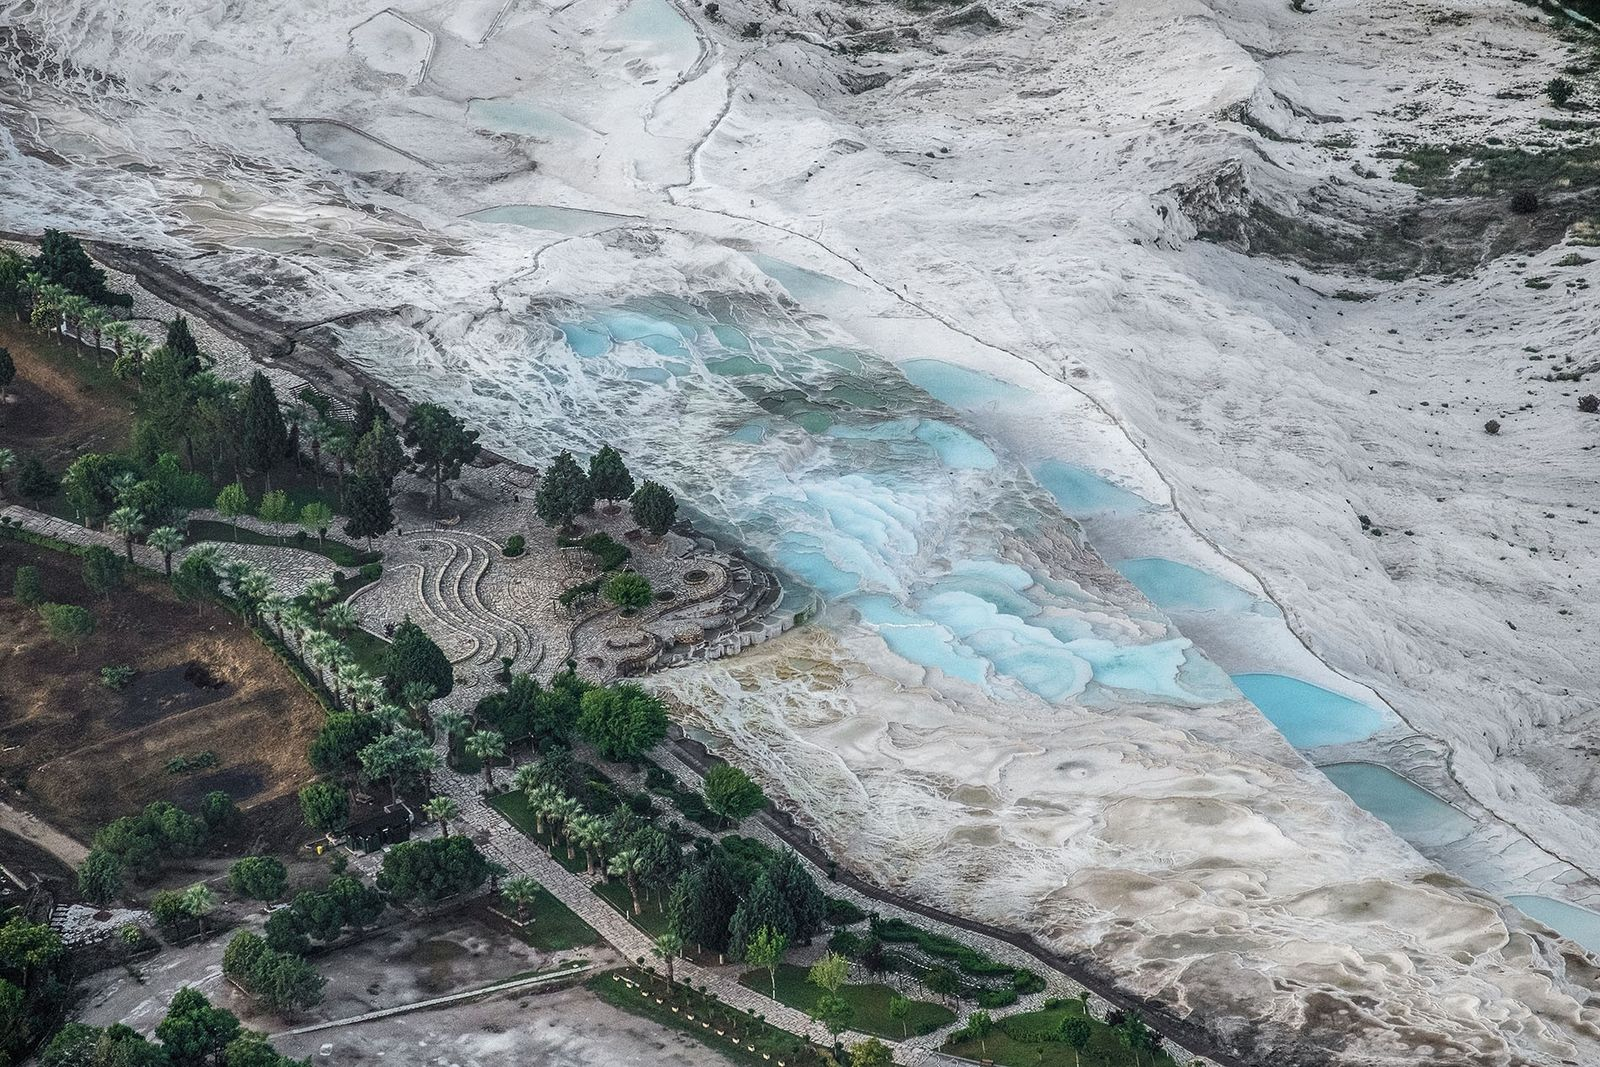 Aerial views of Pamukkale and its limestone thermal pools, taken in from a hot air balloon.